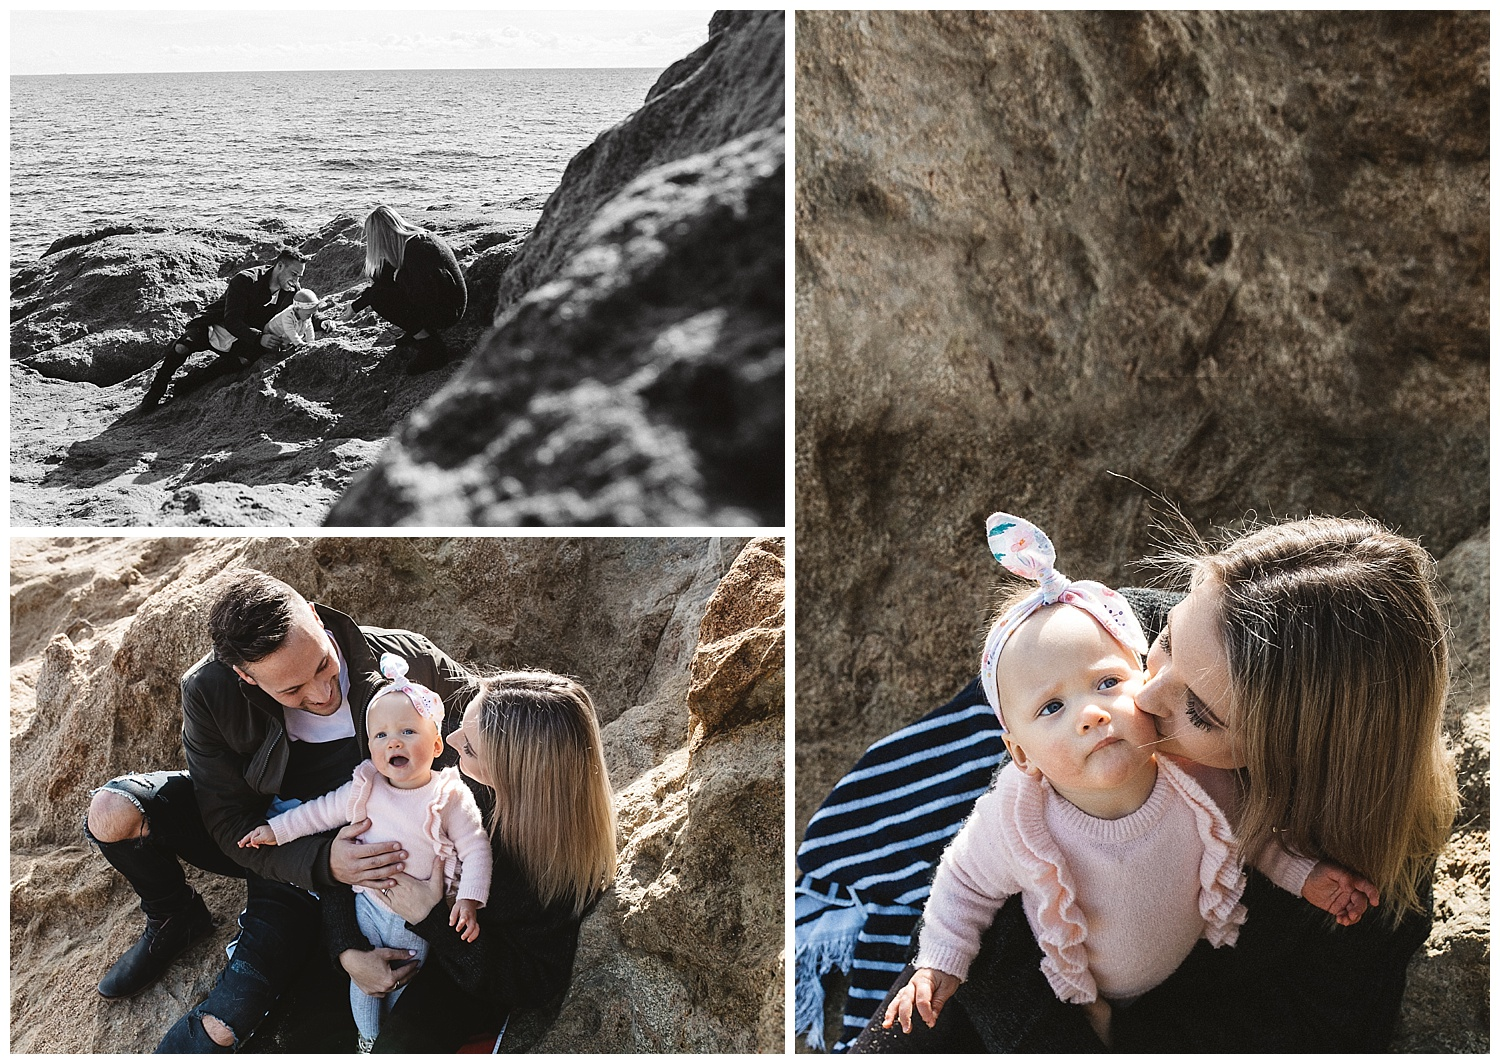 elwood beach is a great location for your baby portraits and candid moments